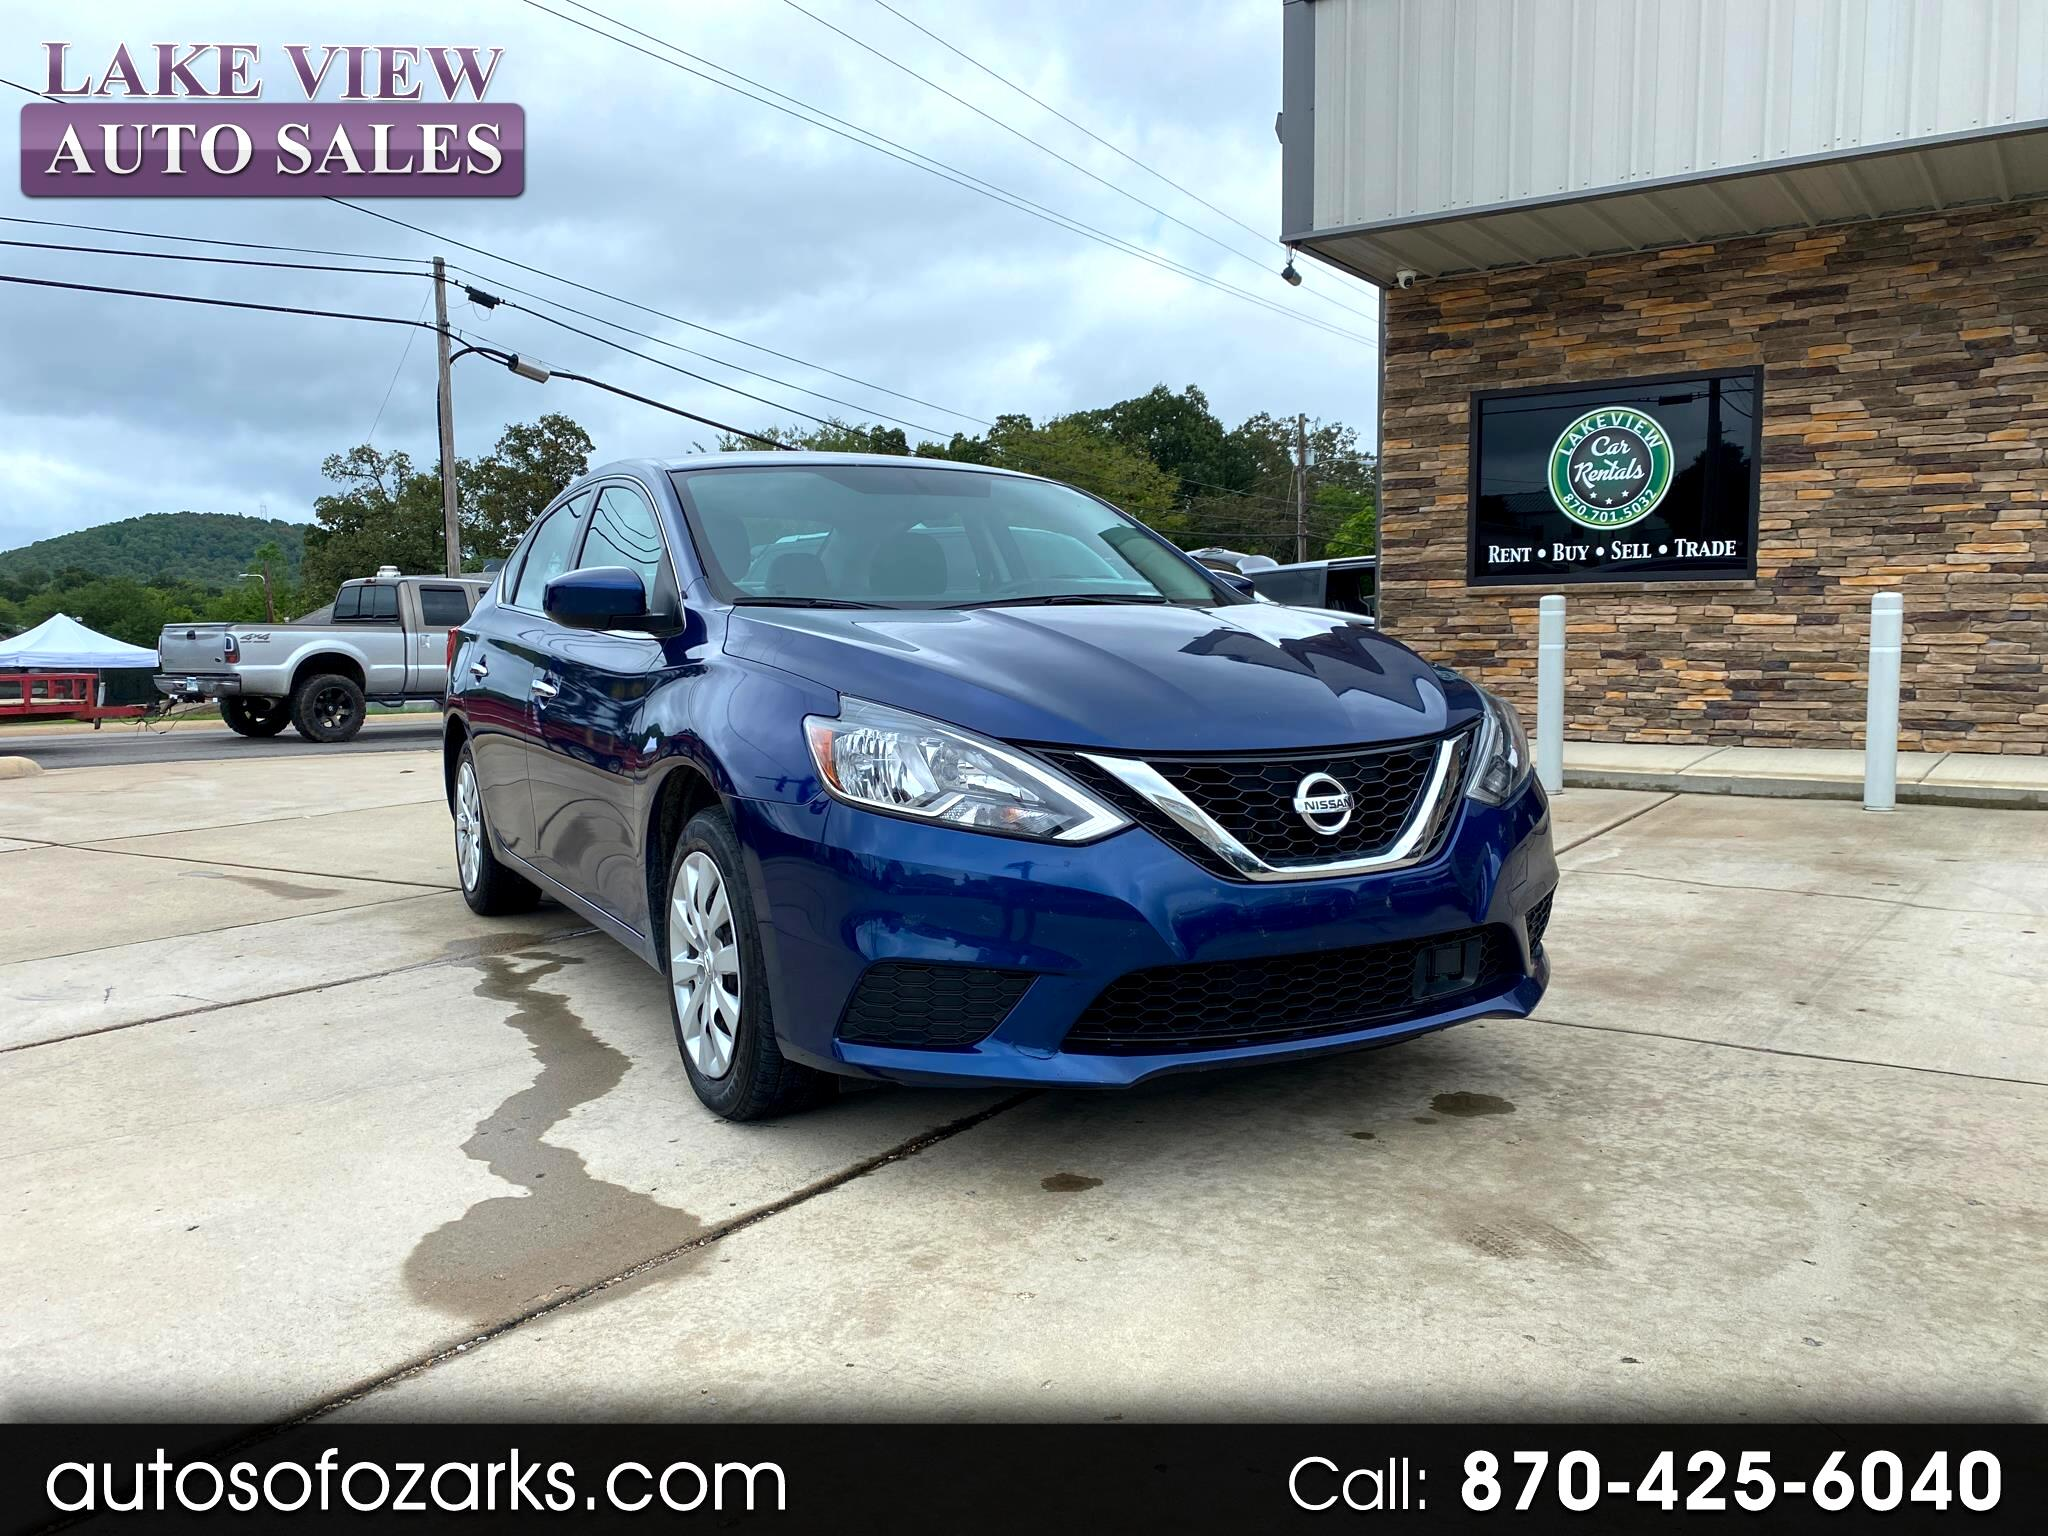 Used 2019 Nissan Sentra S Cvt For Sale In Mountain Home Ar 72653 Lakeview Auto Sales